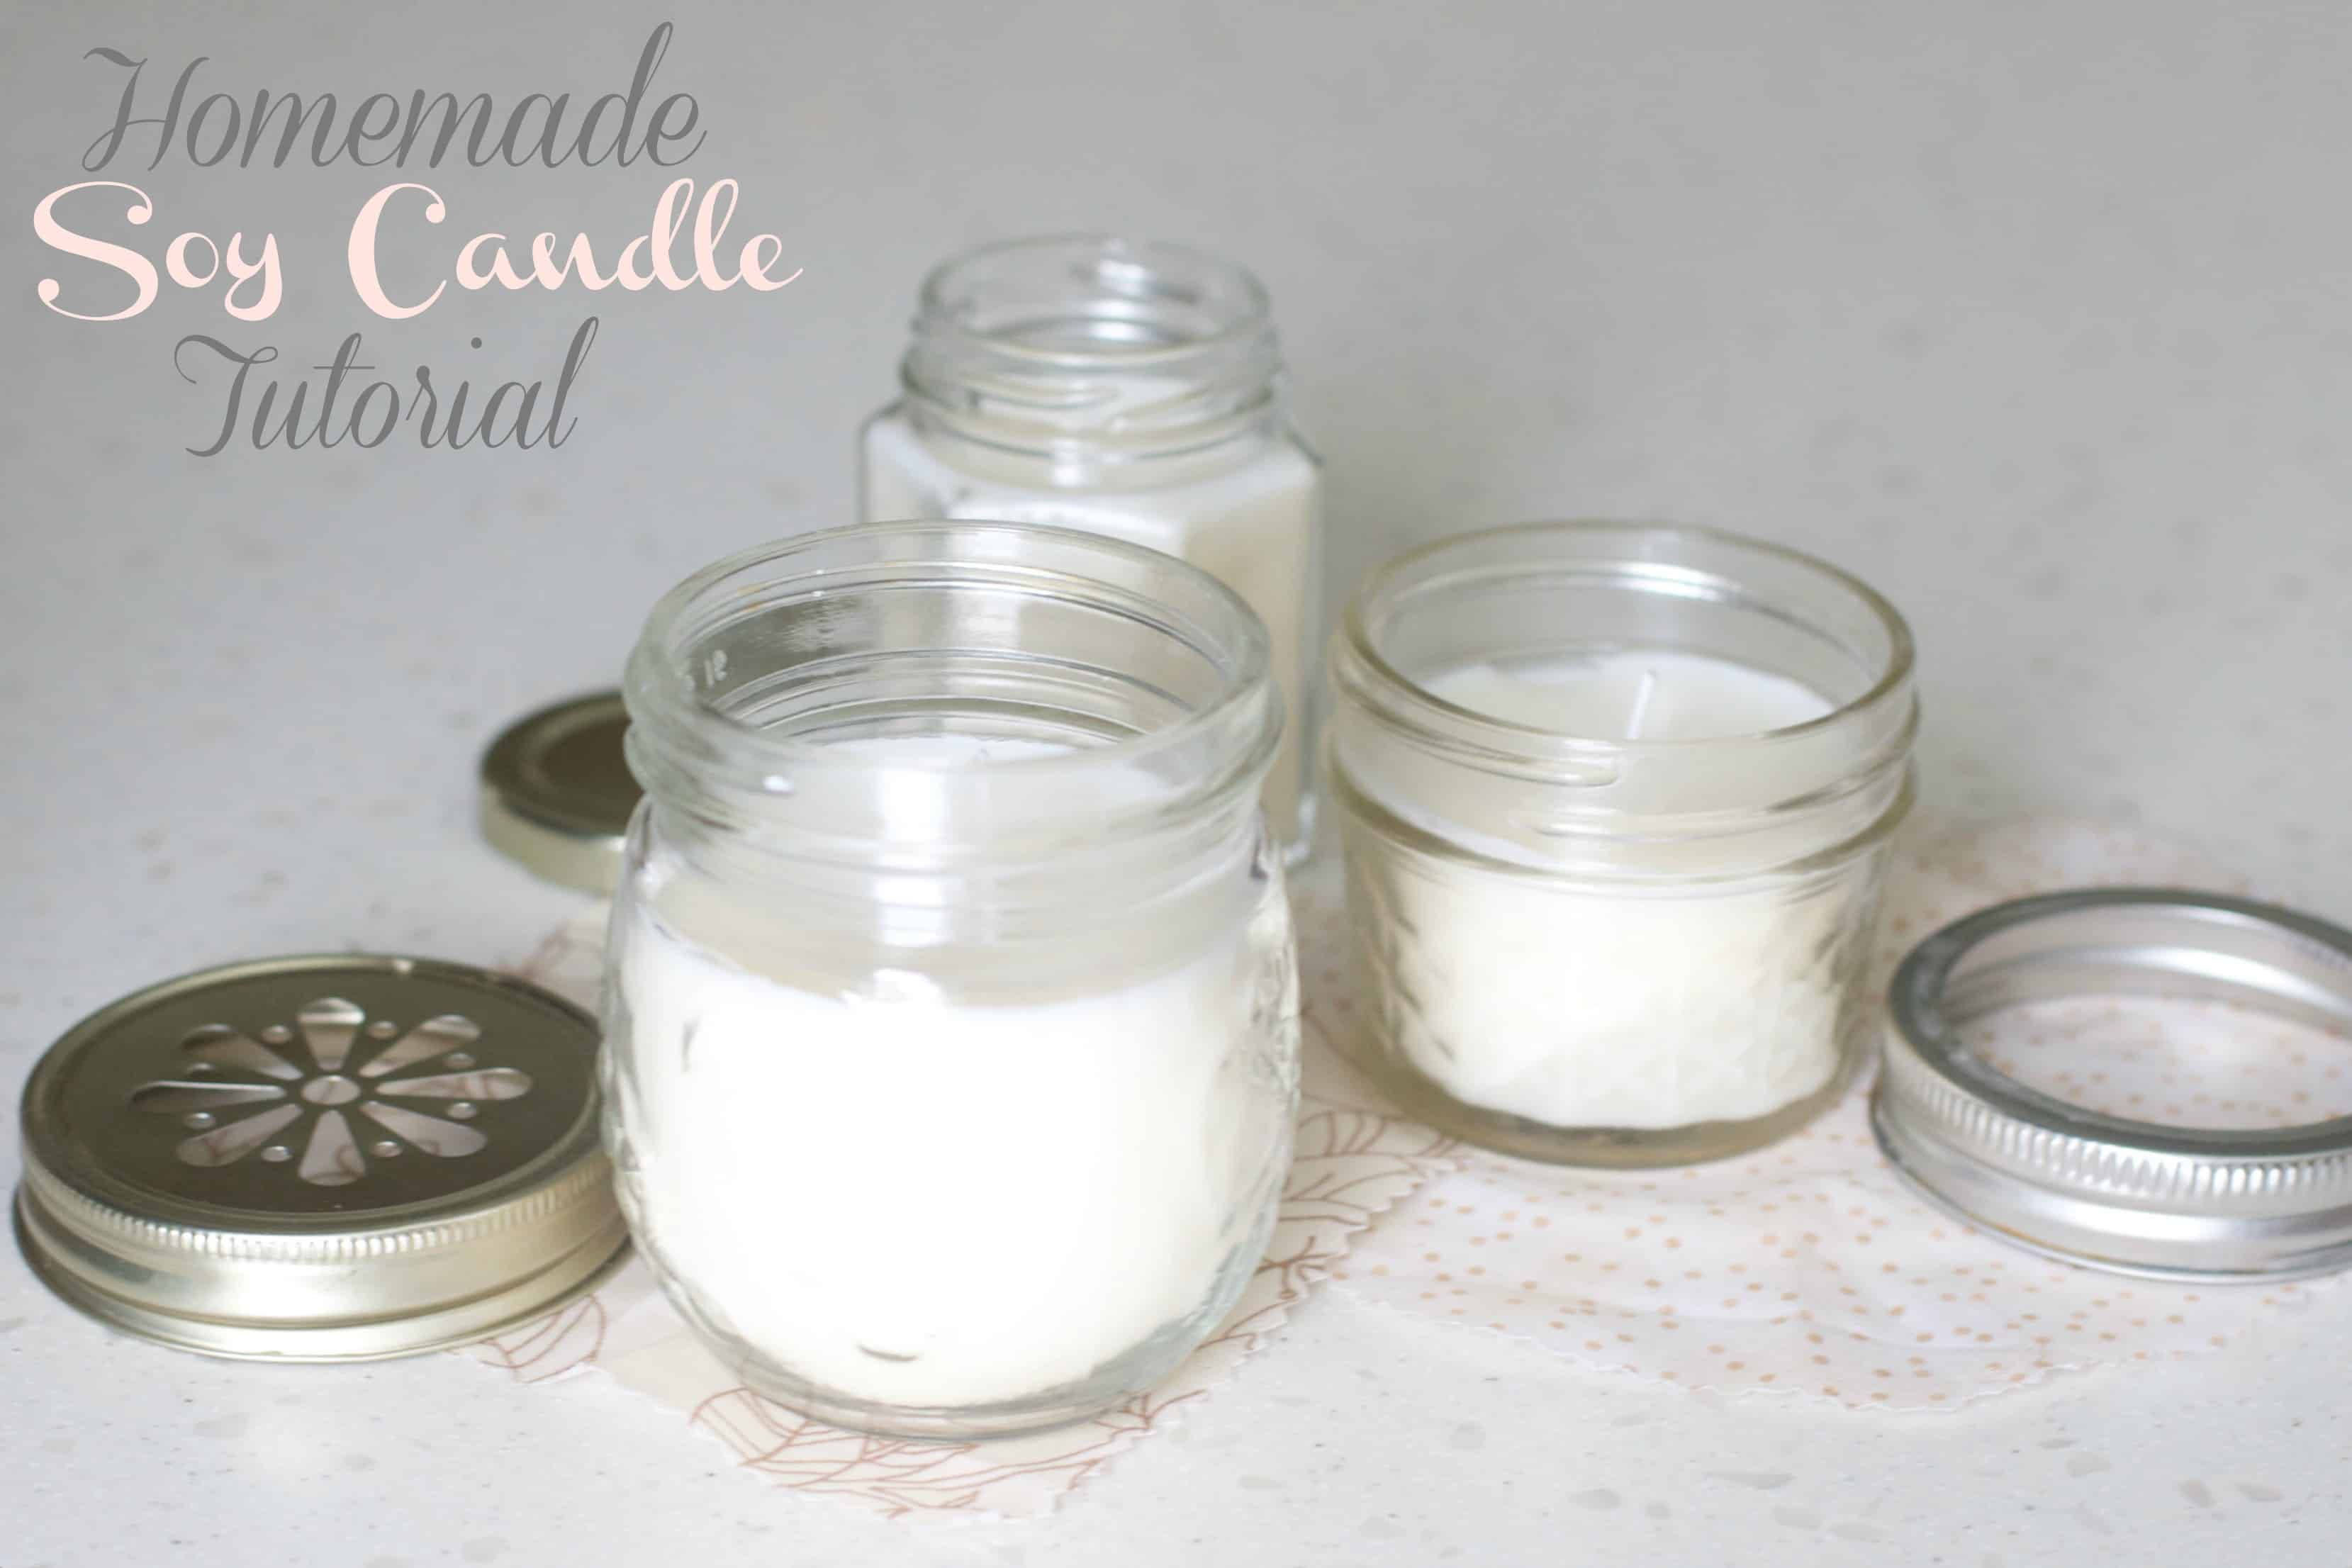 Homemade soy candle